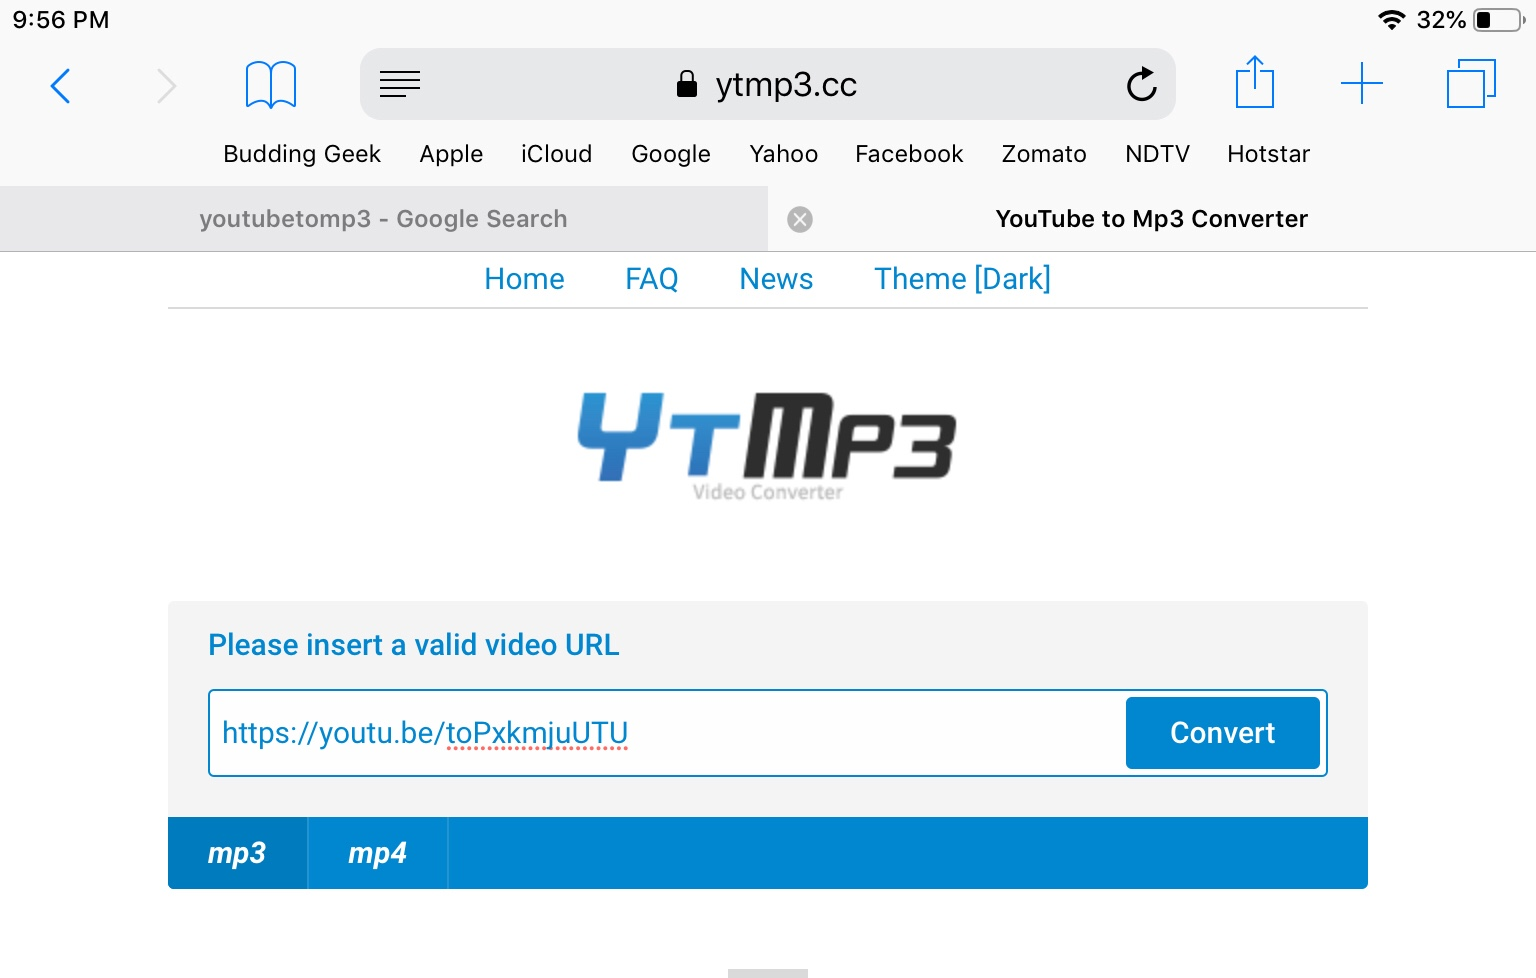 How to download music from YouTube to iPhone (Easiest Guide)